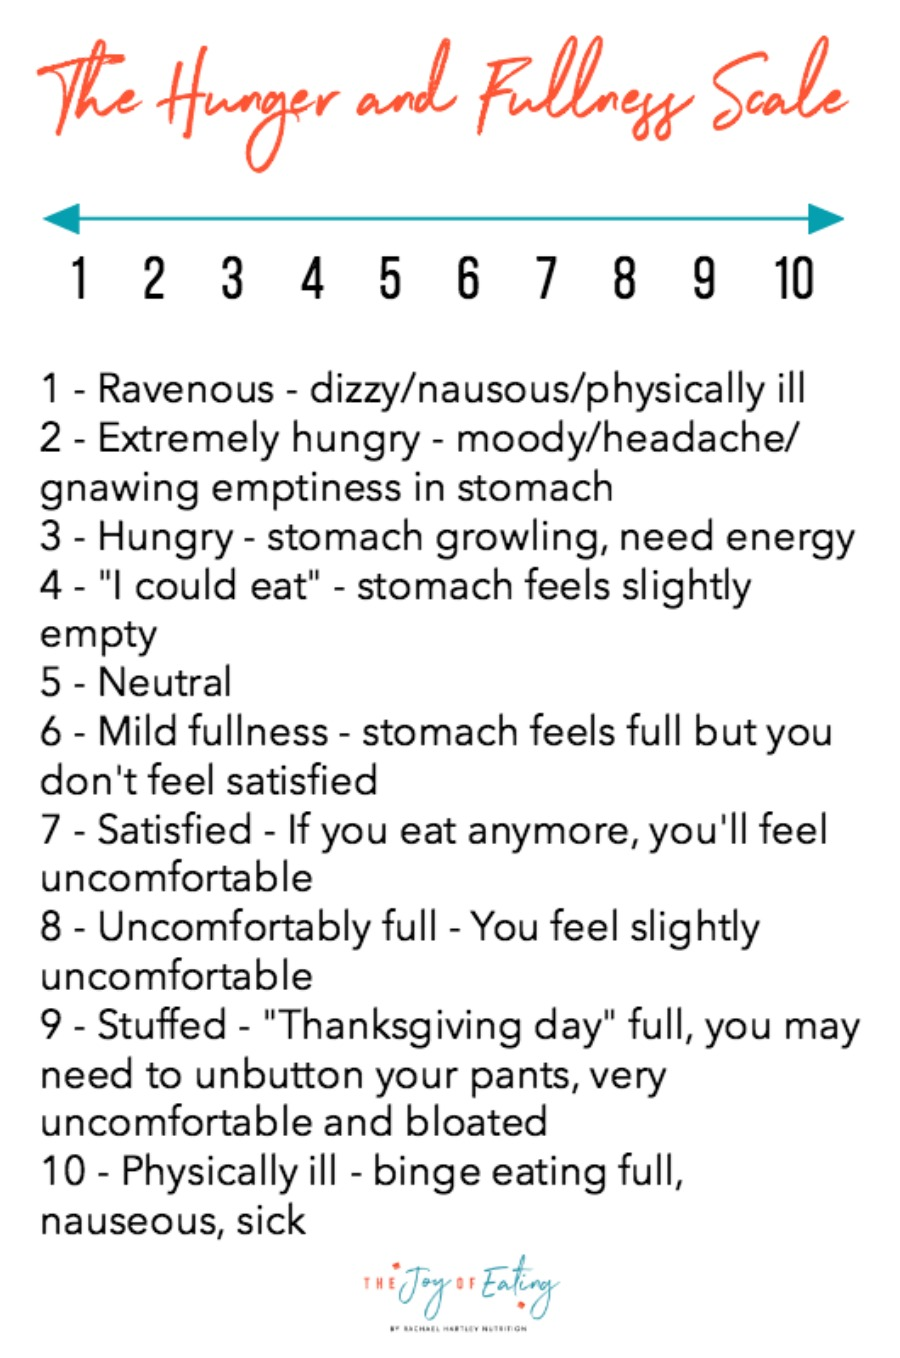 The hunger/fullness scale in intuitive eating #intuitiveeating #nutrition